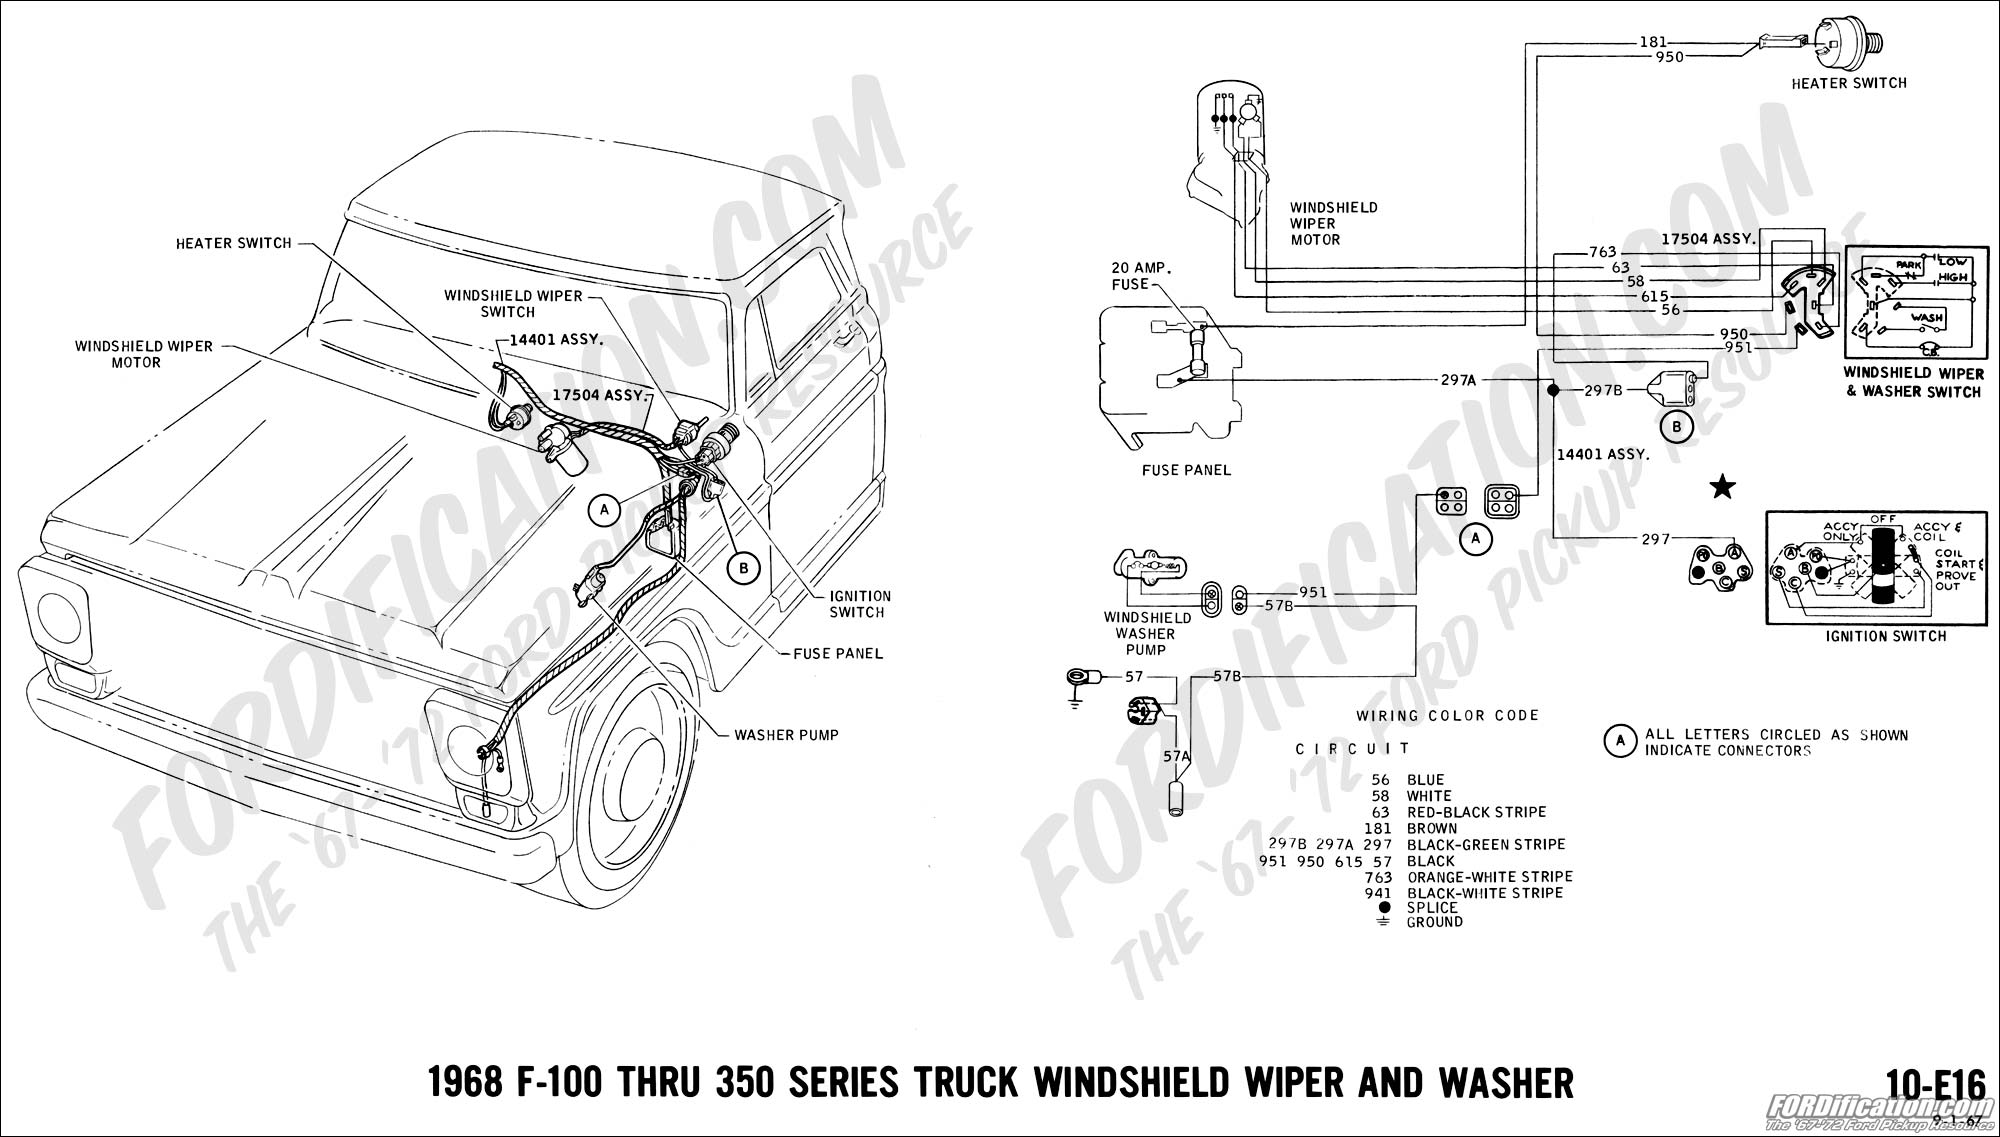 hight resolution of 67 f100 fuse box wiring library fuse box diagram 66 ford 1968 f 100 thru f